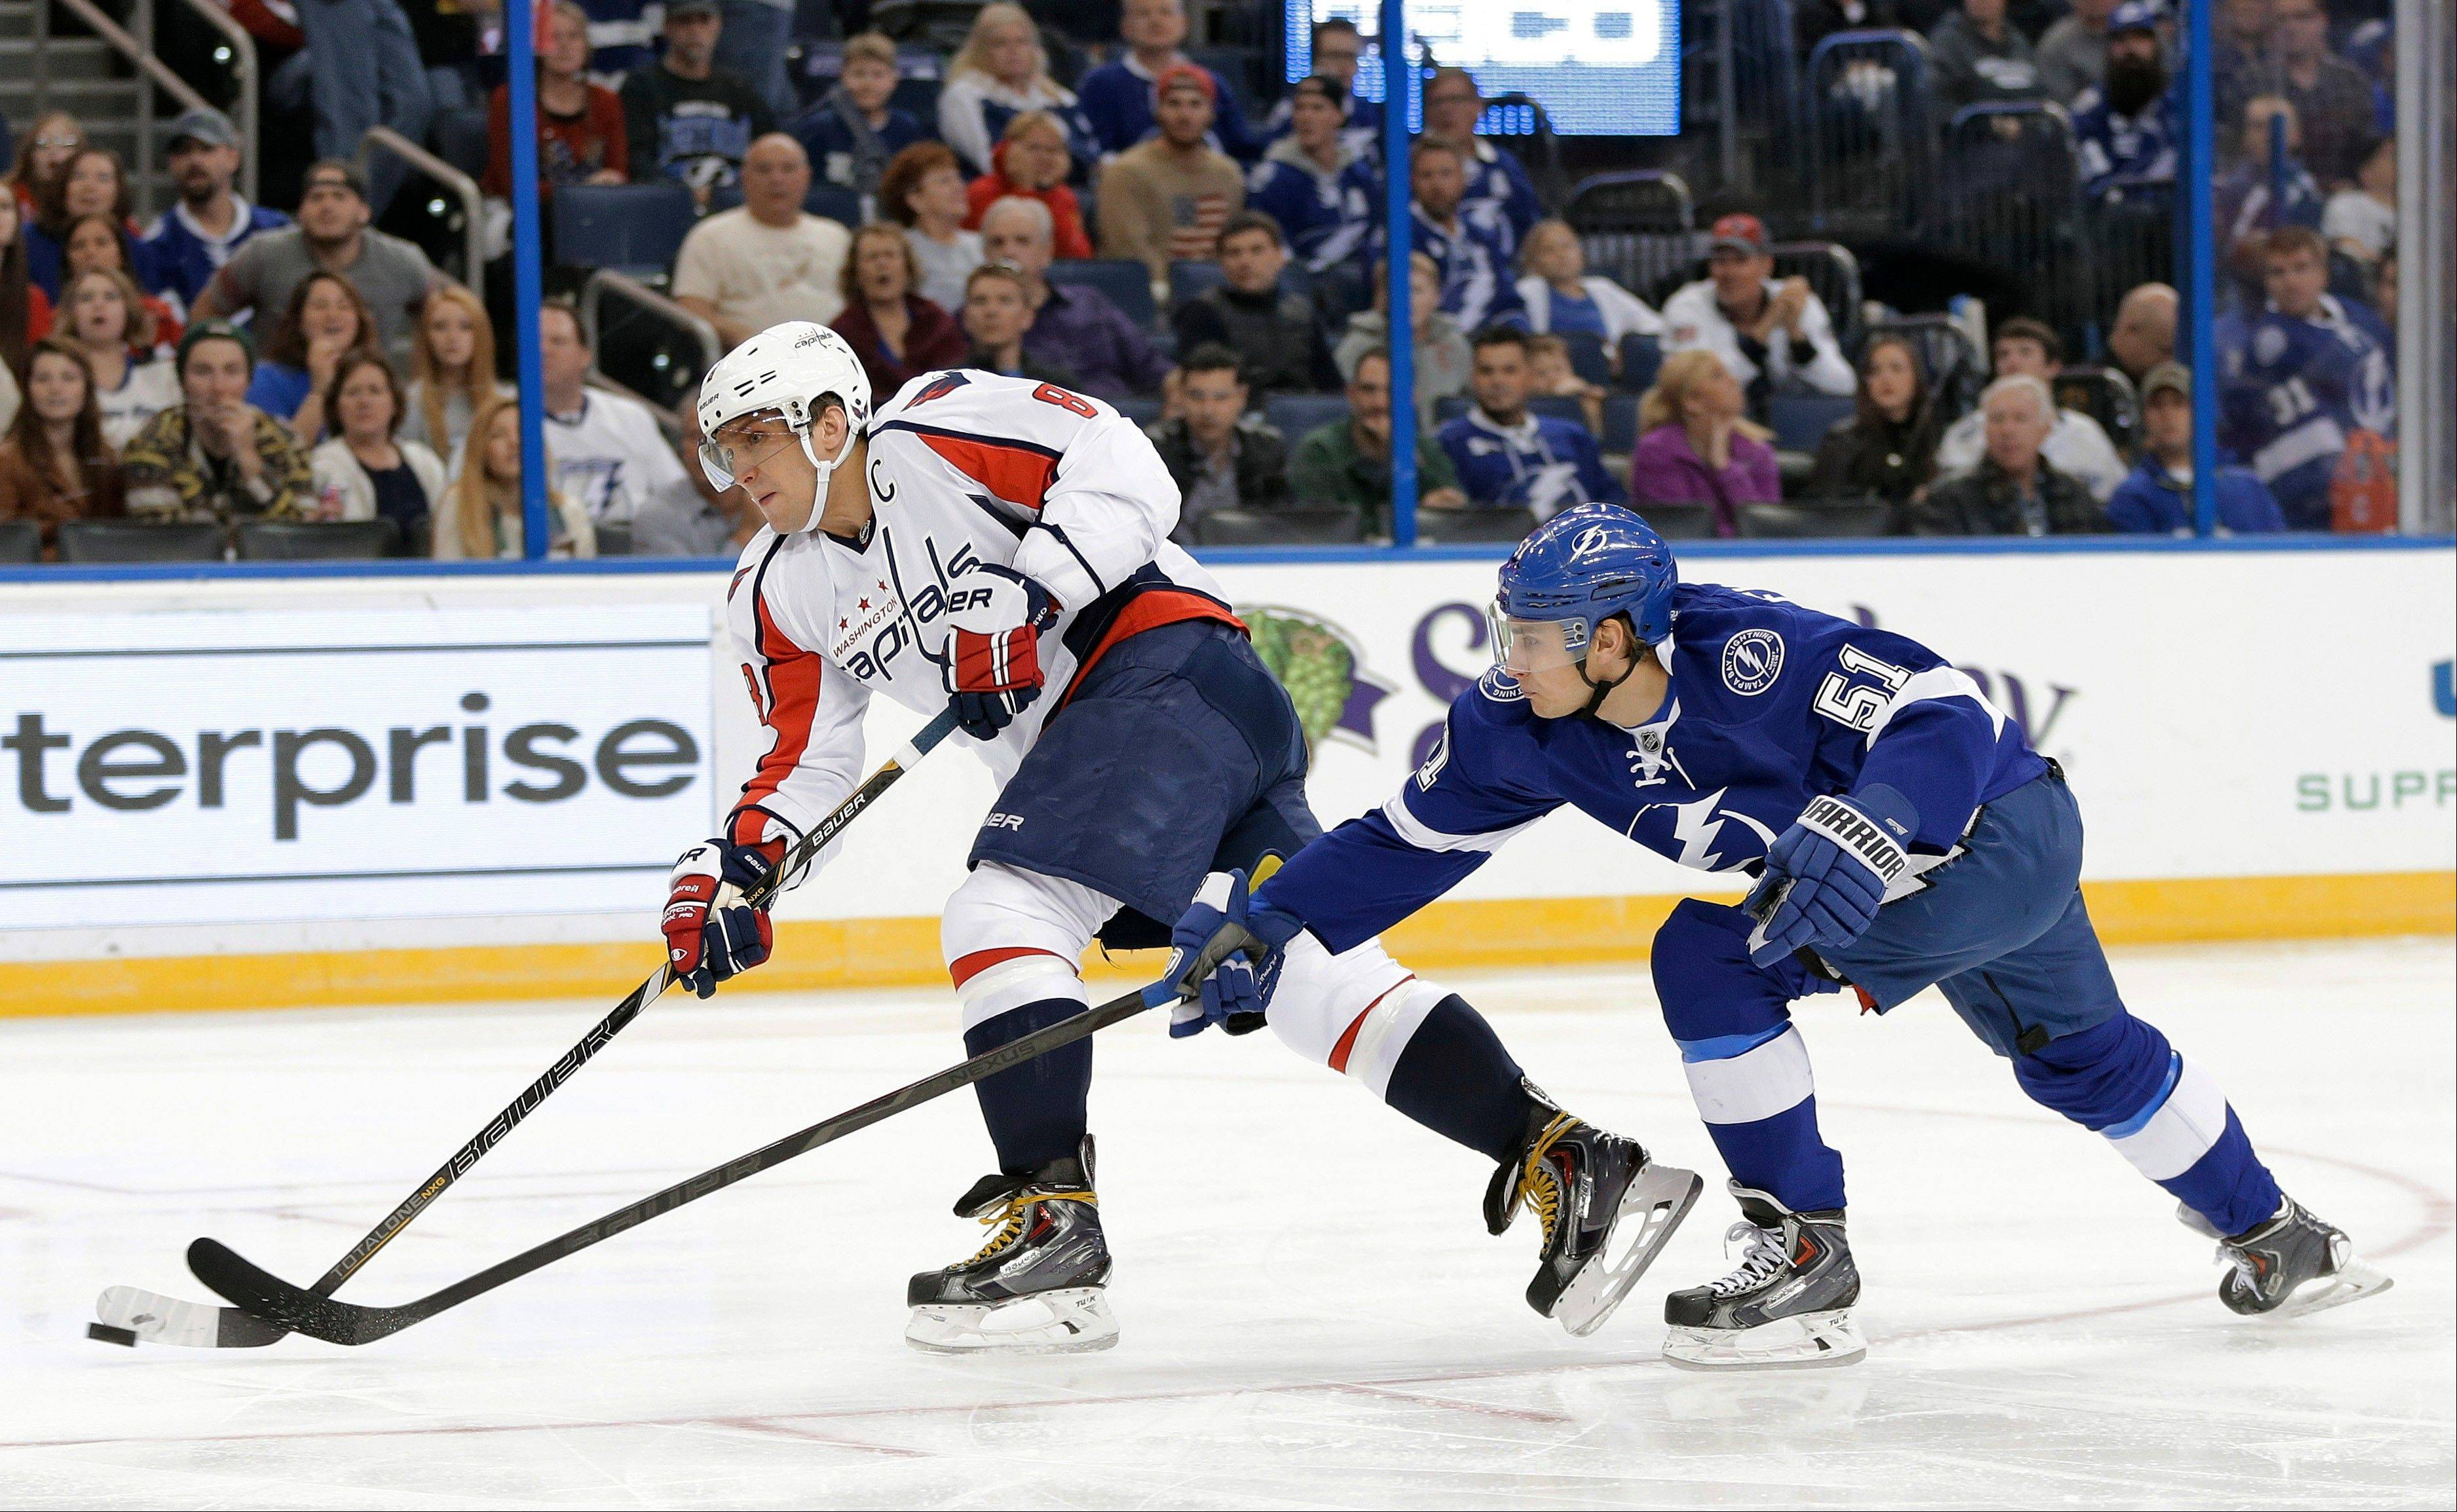 Washington Capitals right wing Alex Ovechkin (8), of Russia, fires the puck on goal after getting past Tampa Bay Lightning center Valtteri Filppula (51), of Finland, during the first period of an NHL hockey game Thursday, Jan. 9, 2014, in Tampa, Fla.